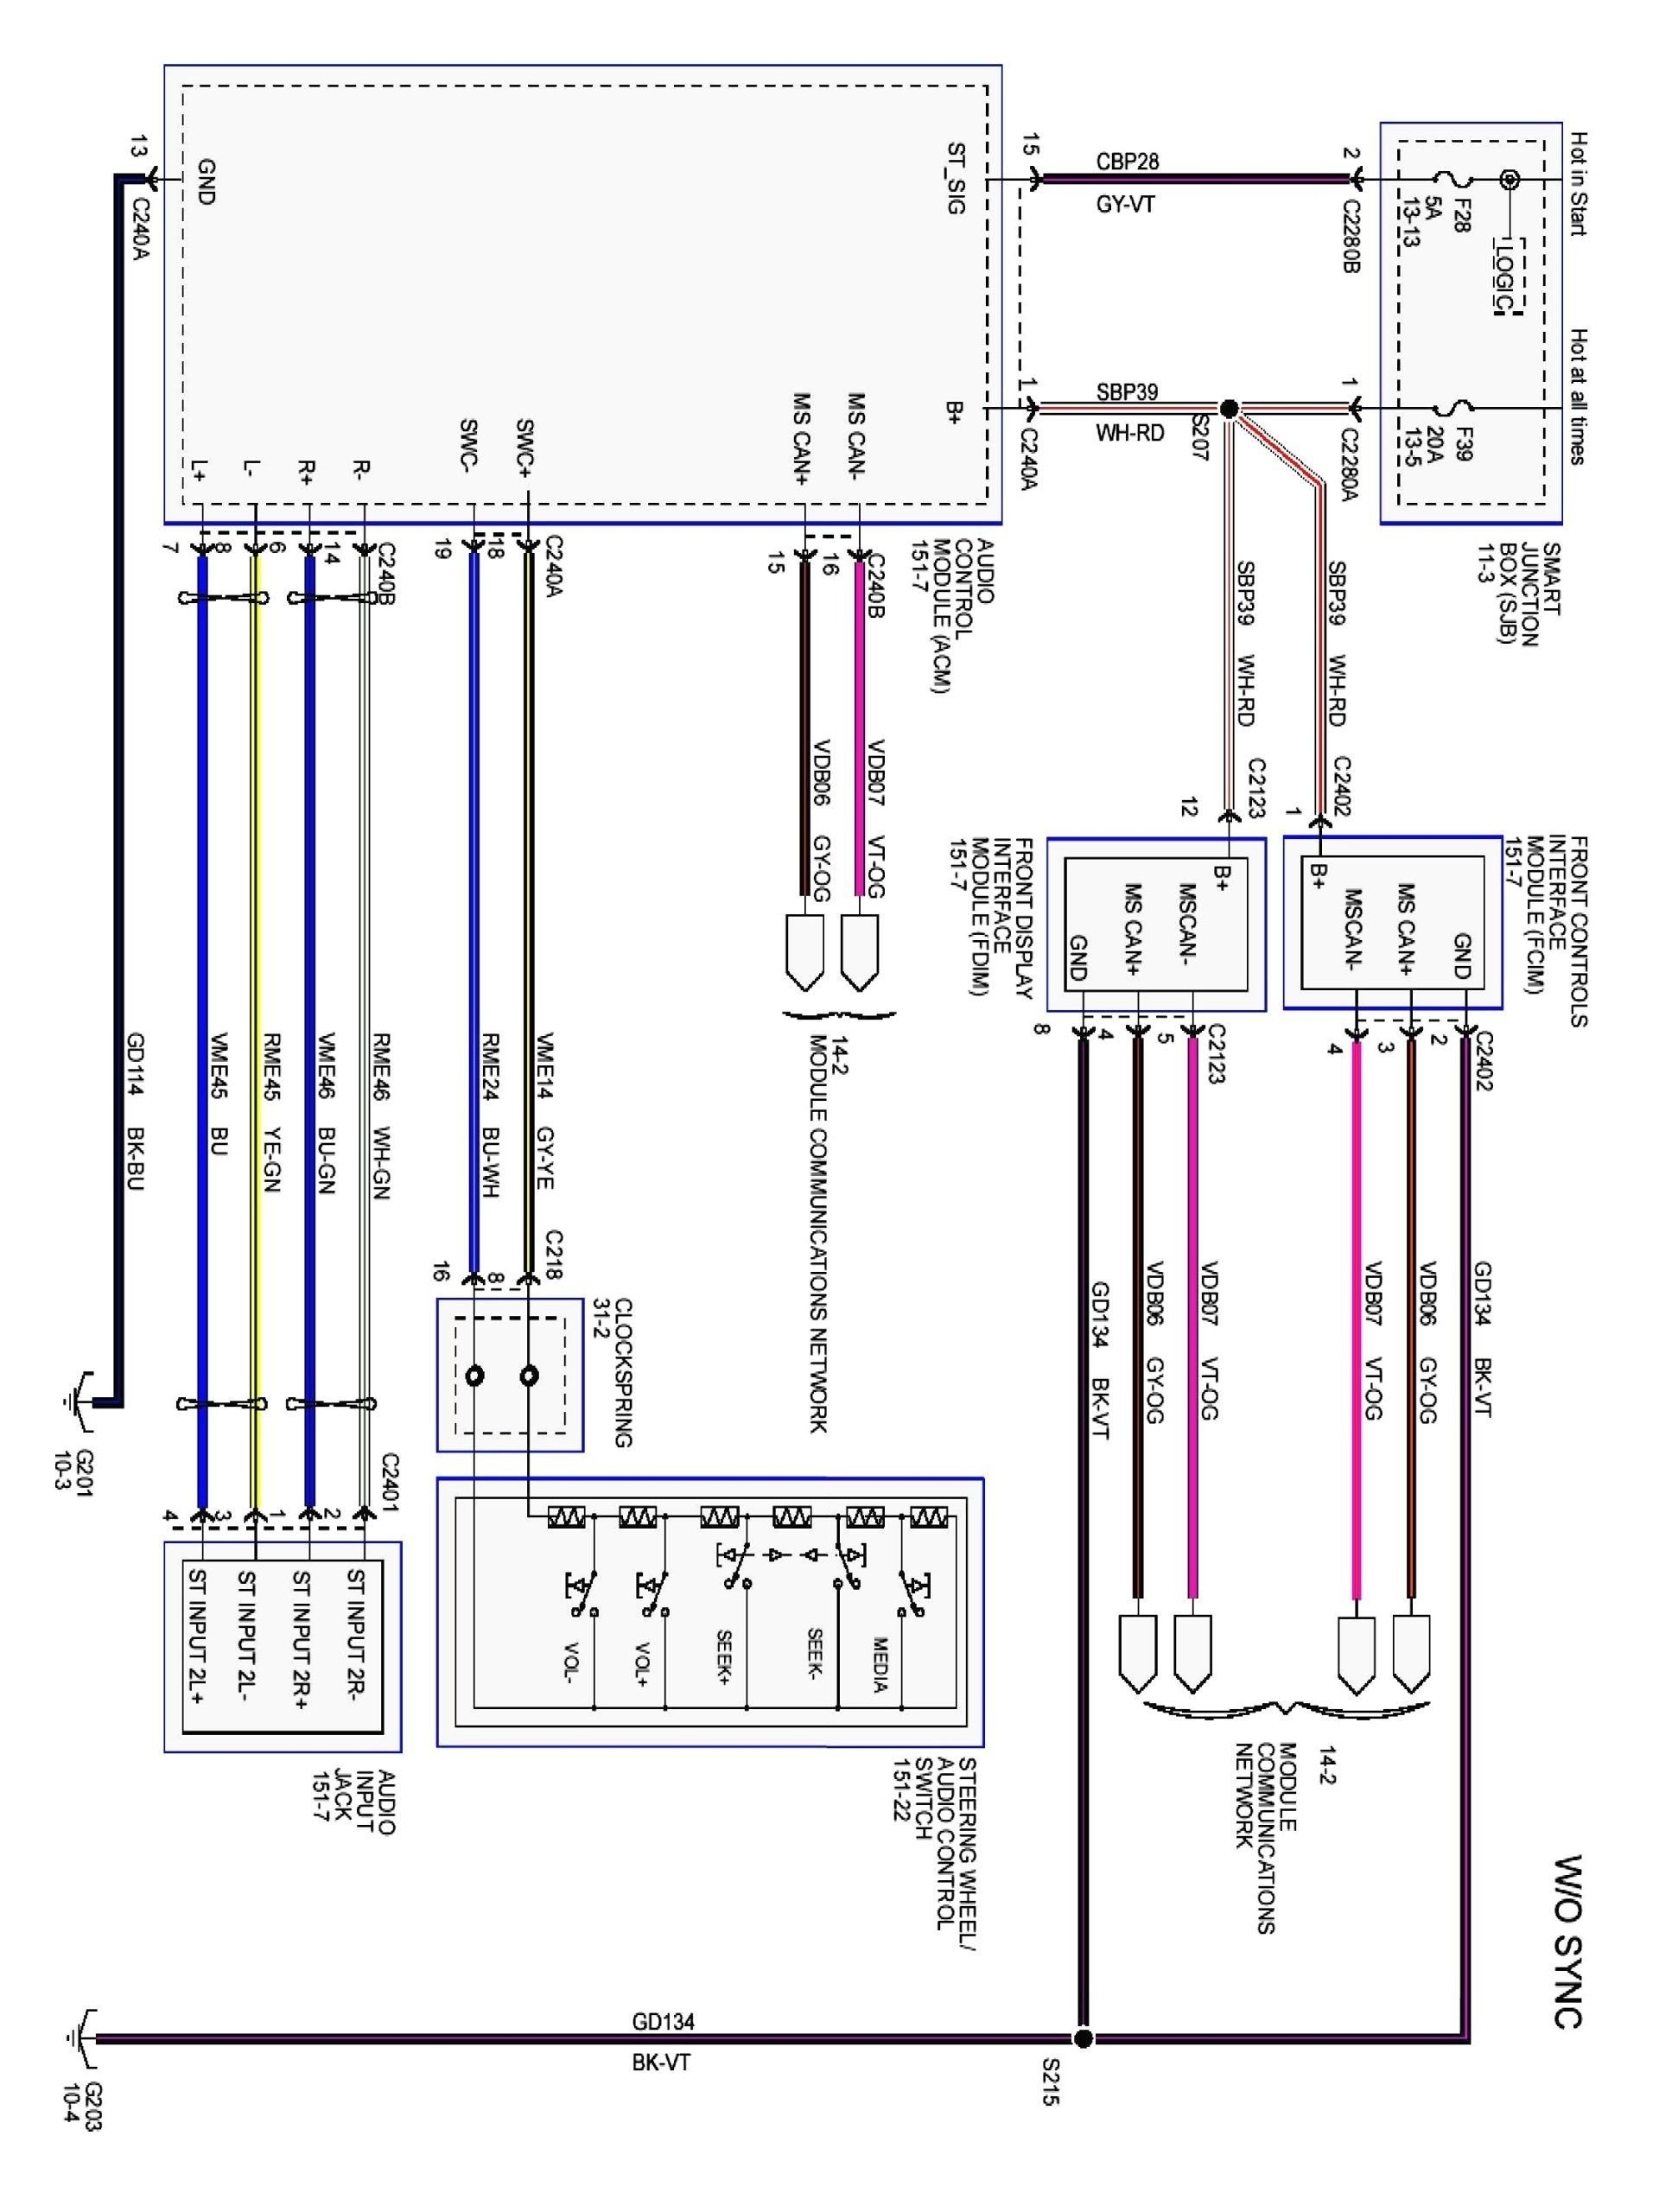 wiring diagram for audi a4 towbar diagram diagramtemplate audi towbar wiring diagram [ 1920 x 2560 Pixel ]